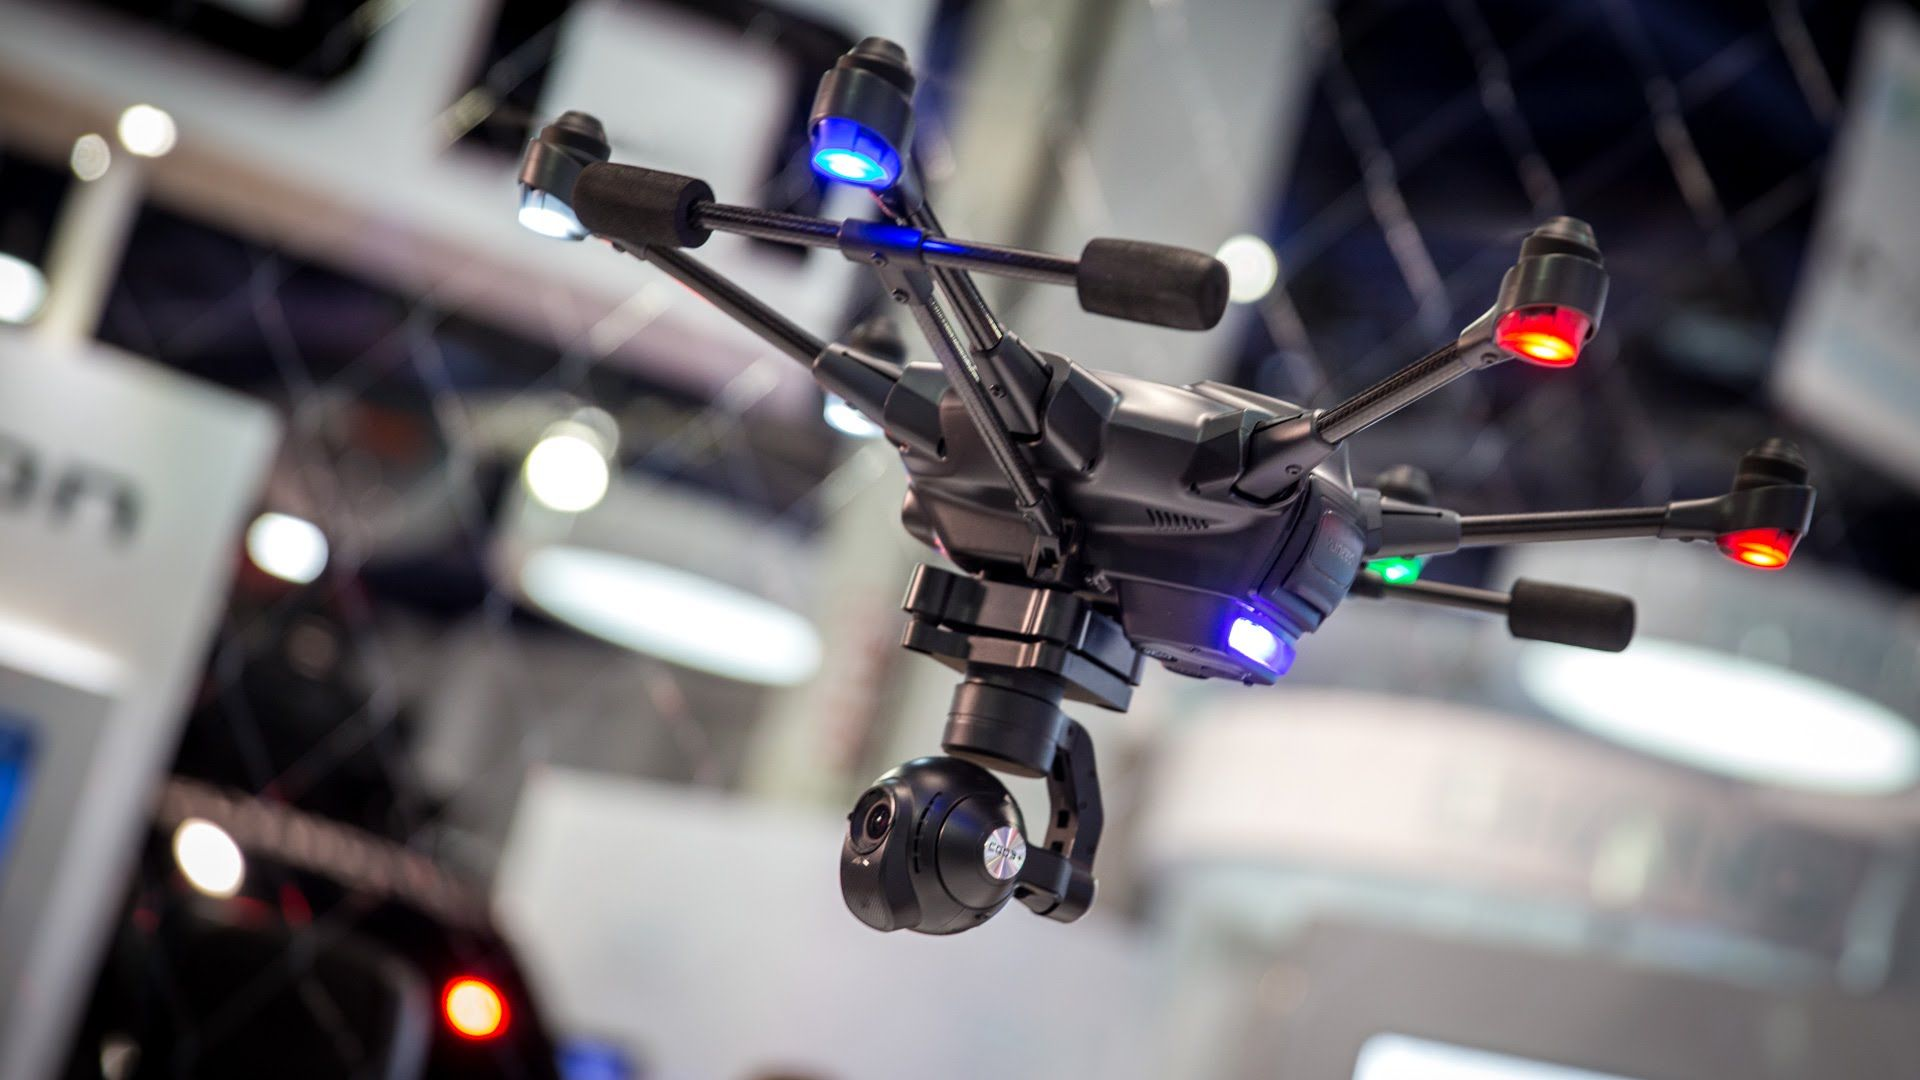 Typhoon H Drone Uses Intel Technology To Map Out A 3d Flight Path Yuneec Drones Yuneec Drone Design